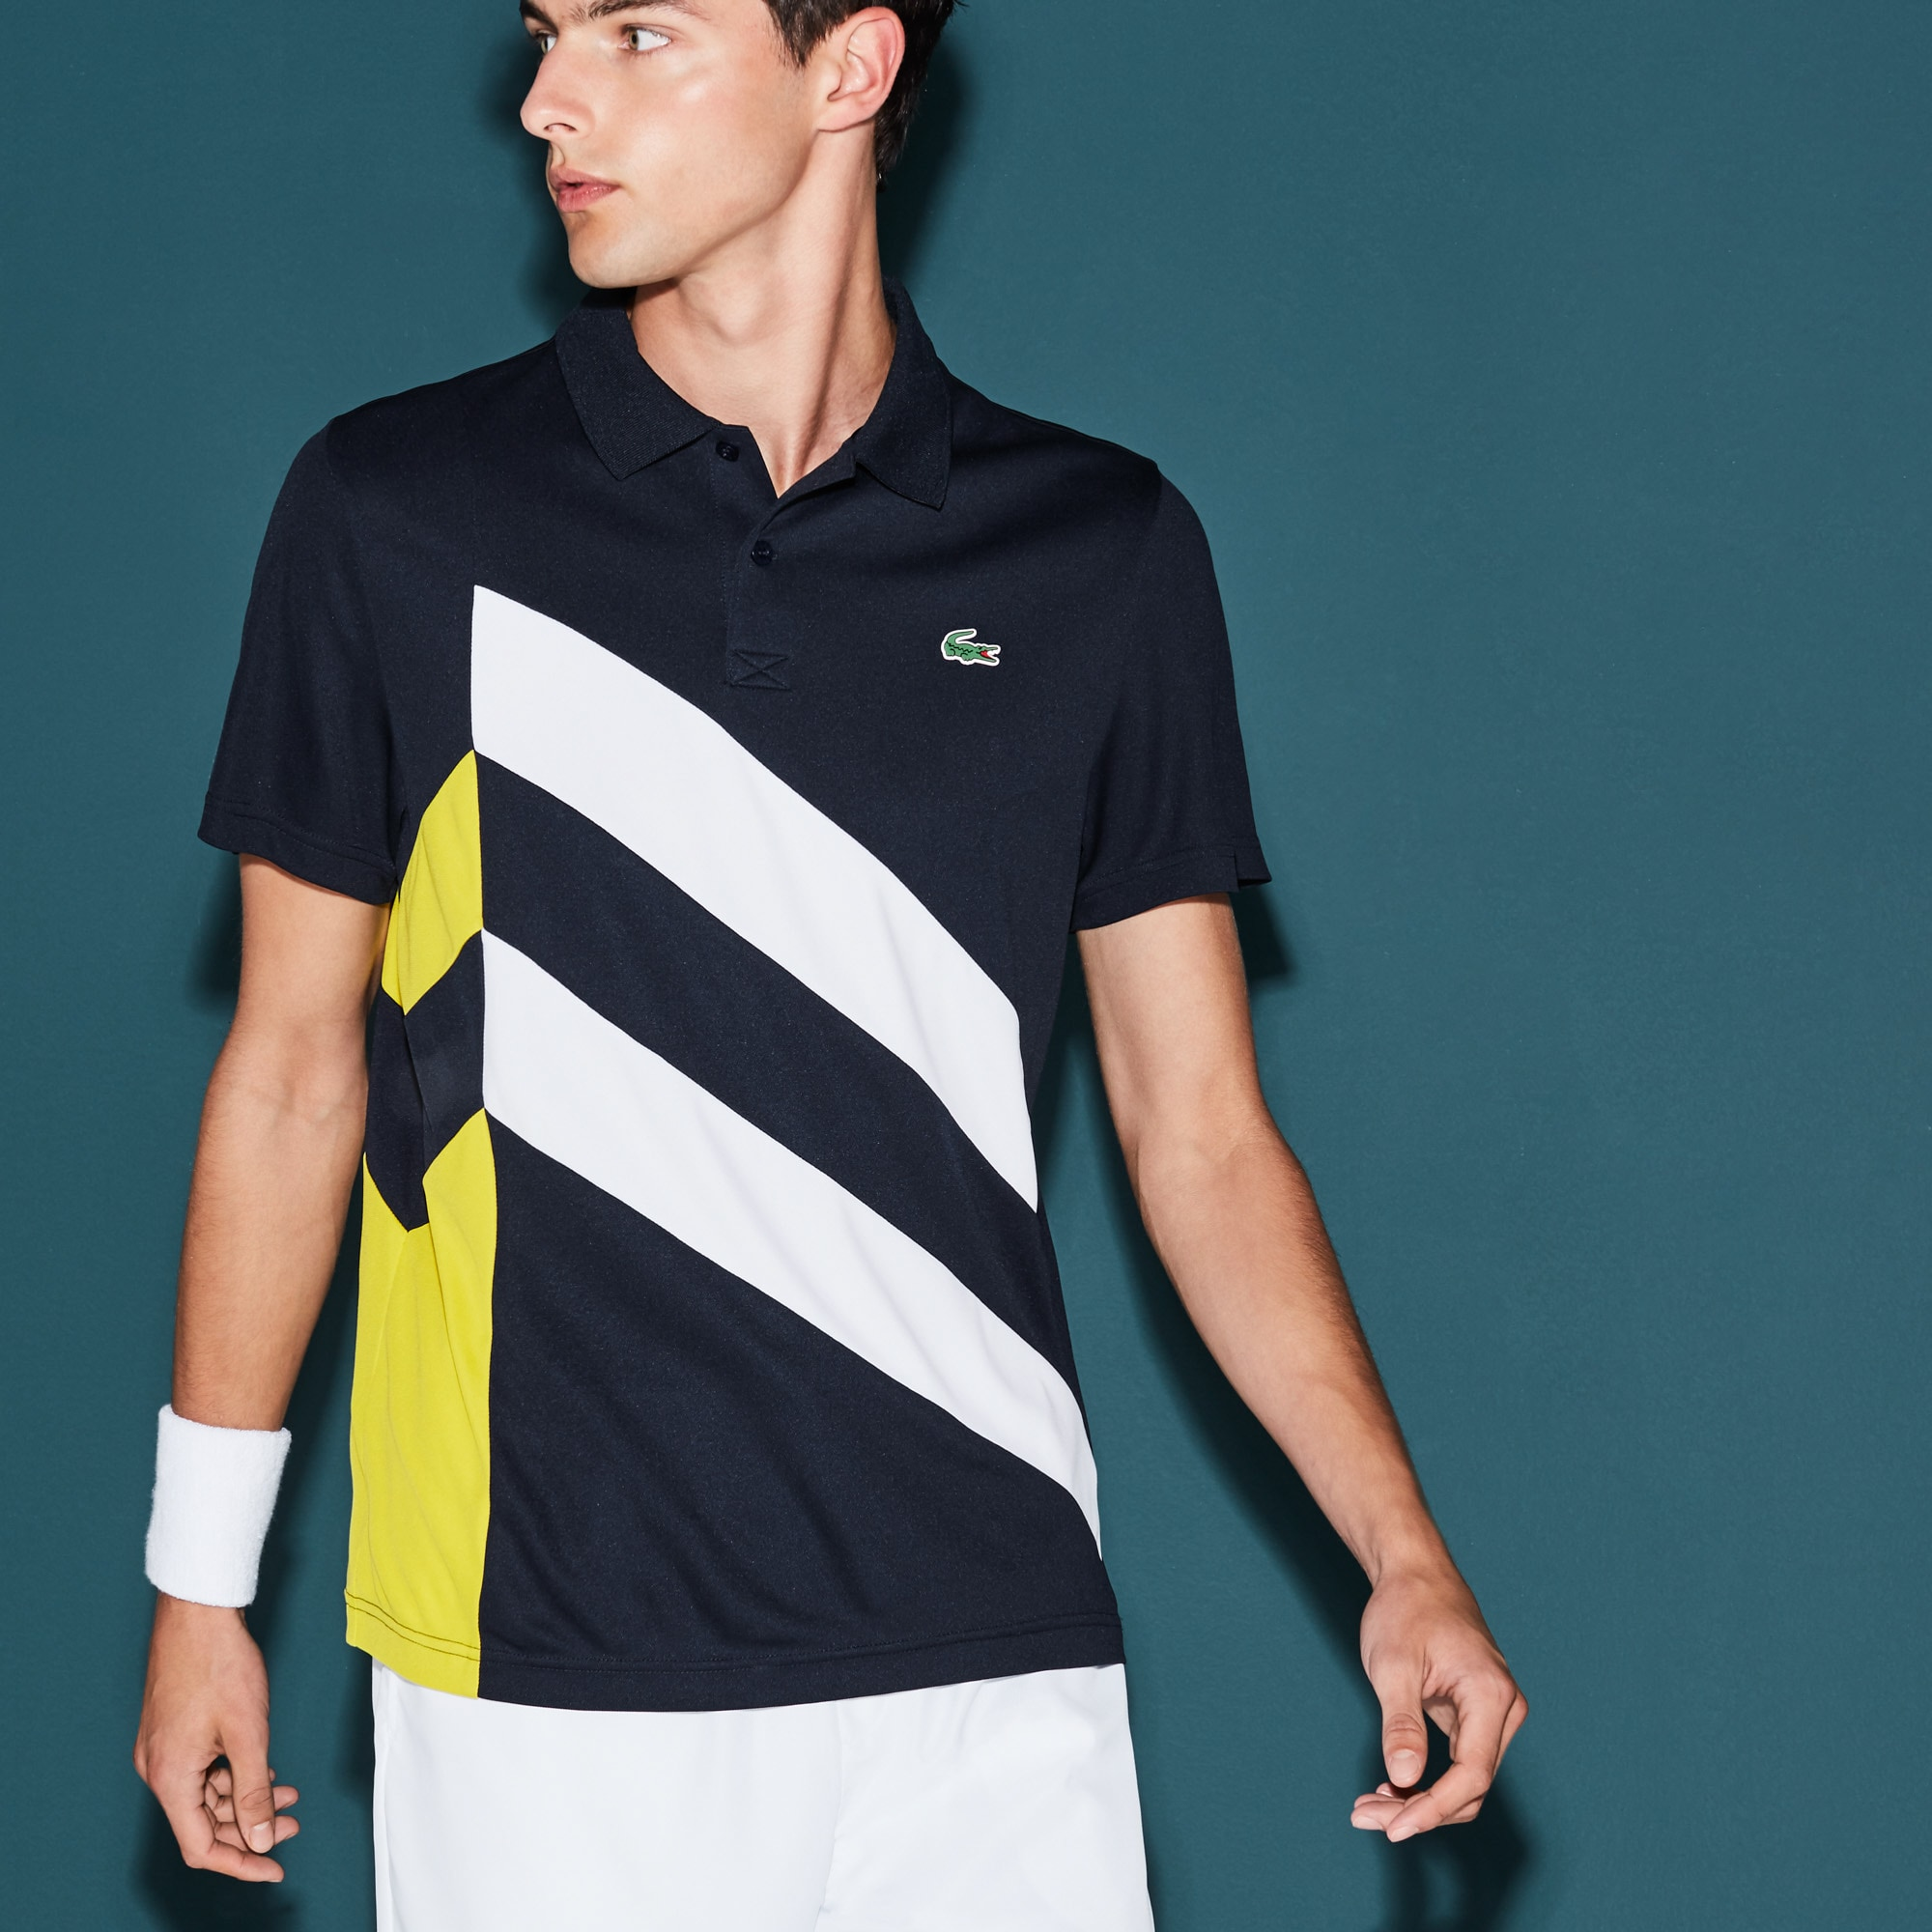 Herren-Funktions-Polo mit Colorblockband LACOSTE SPORT TENNIS